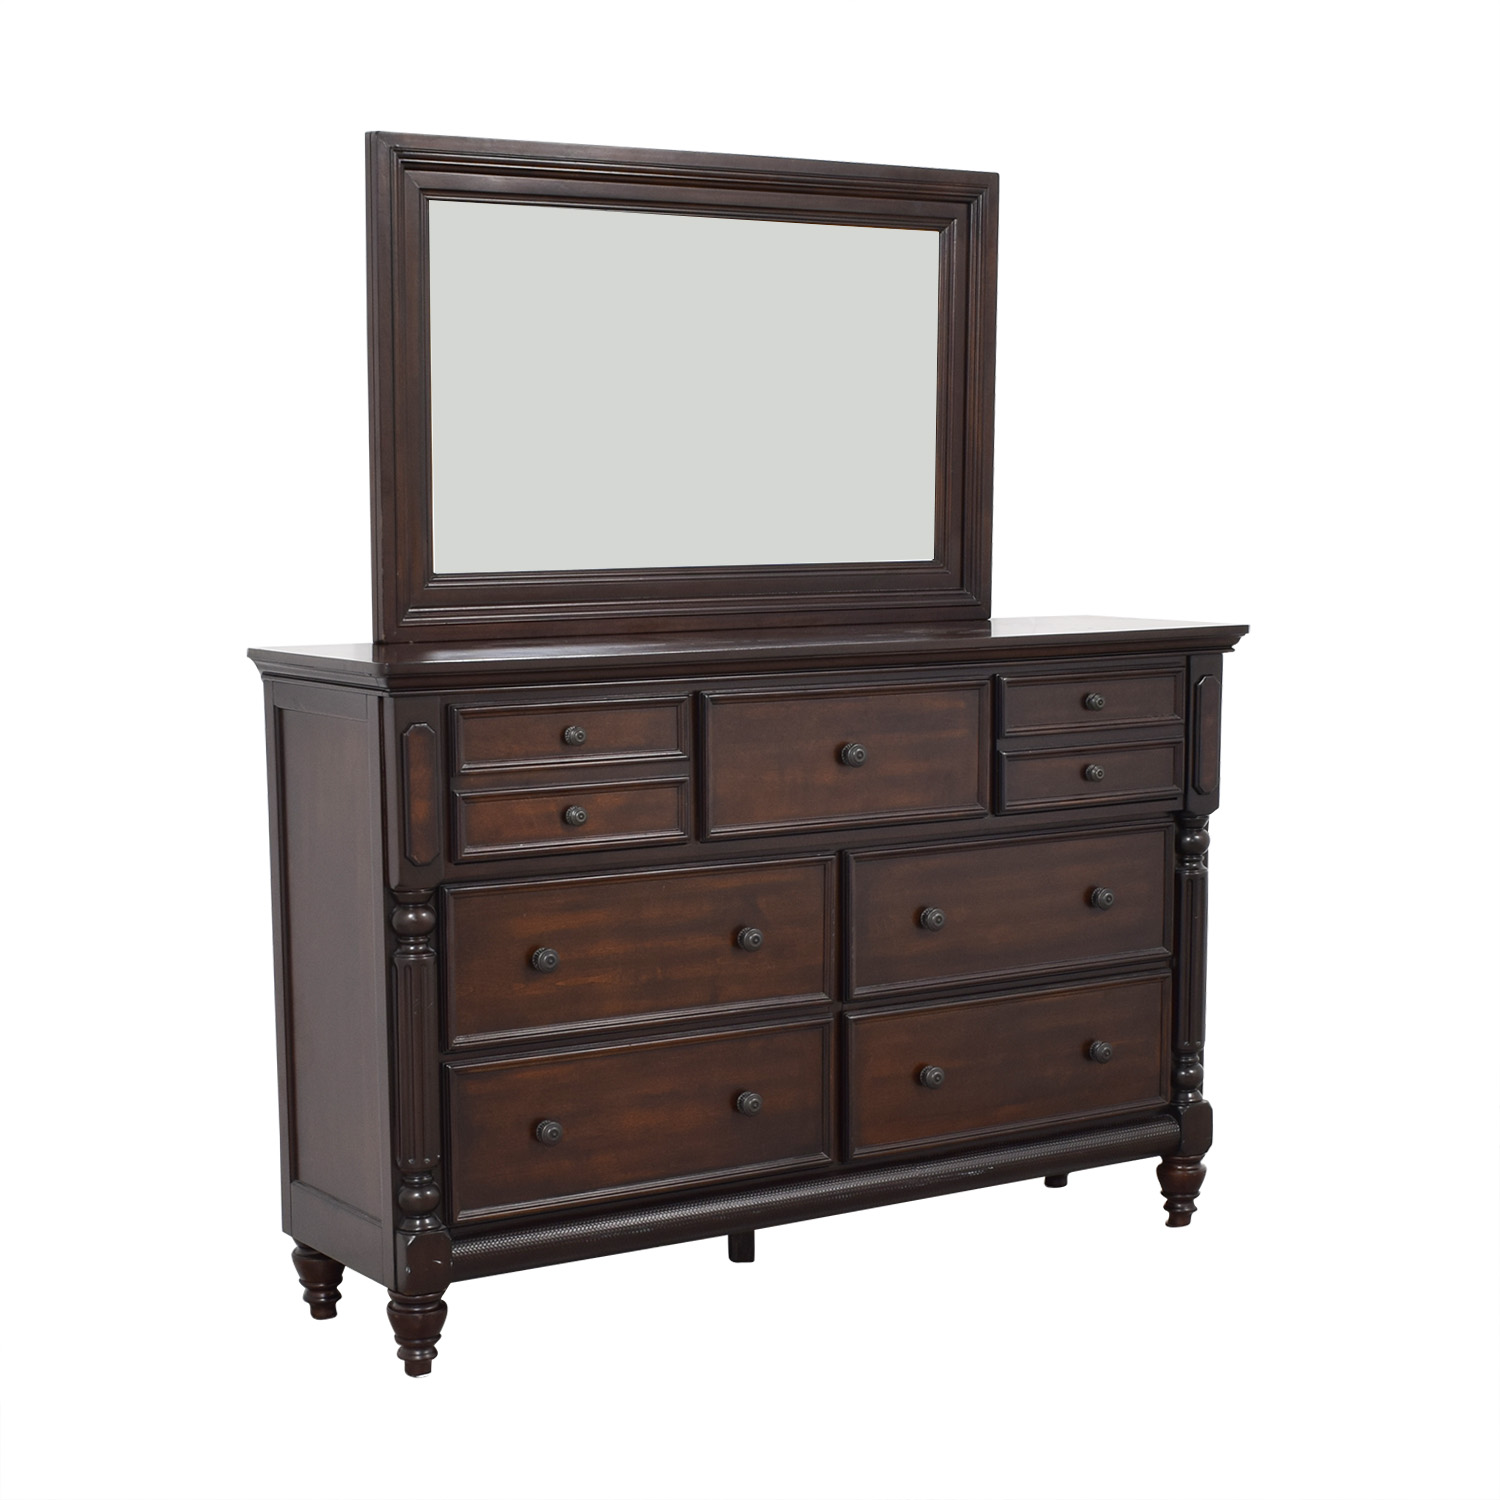 Ashley Furniture Ashley Furniture Key Town Dresser with Mirror discount